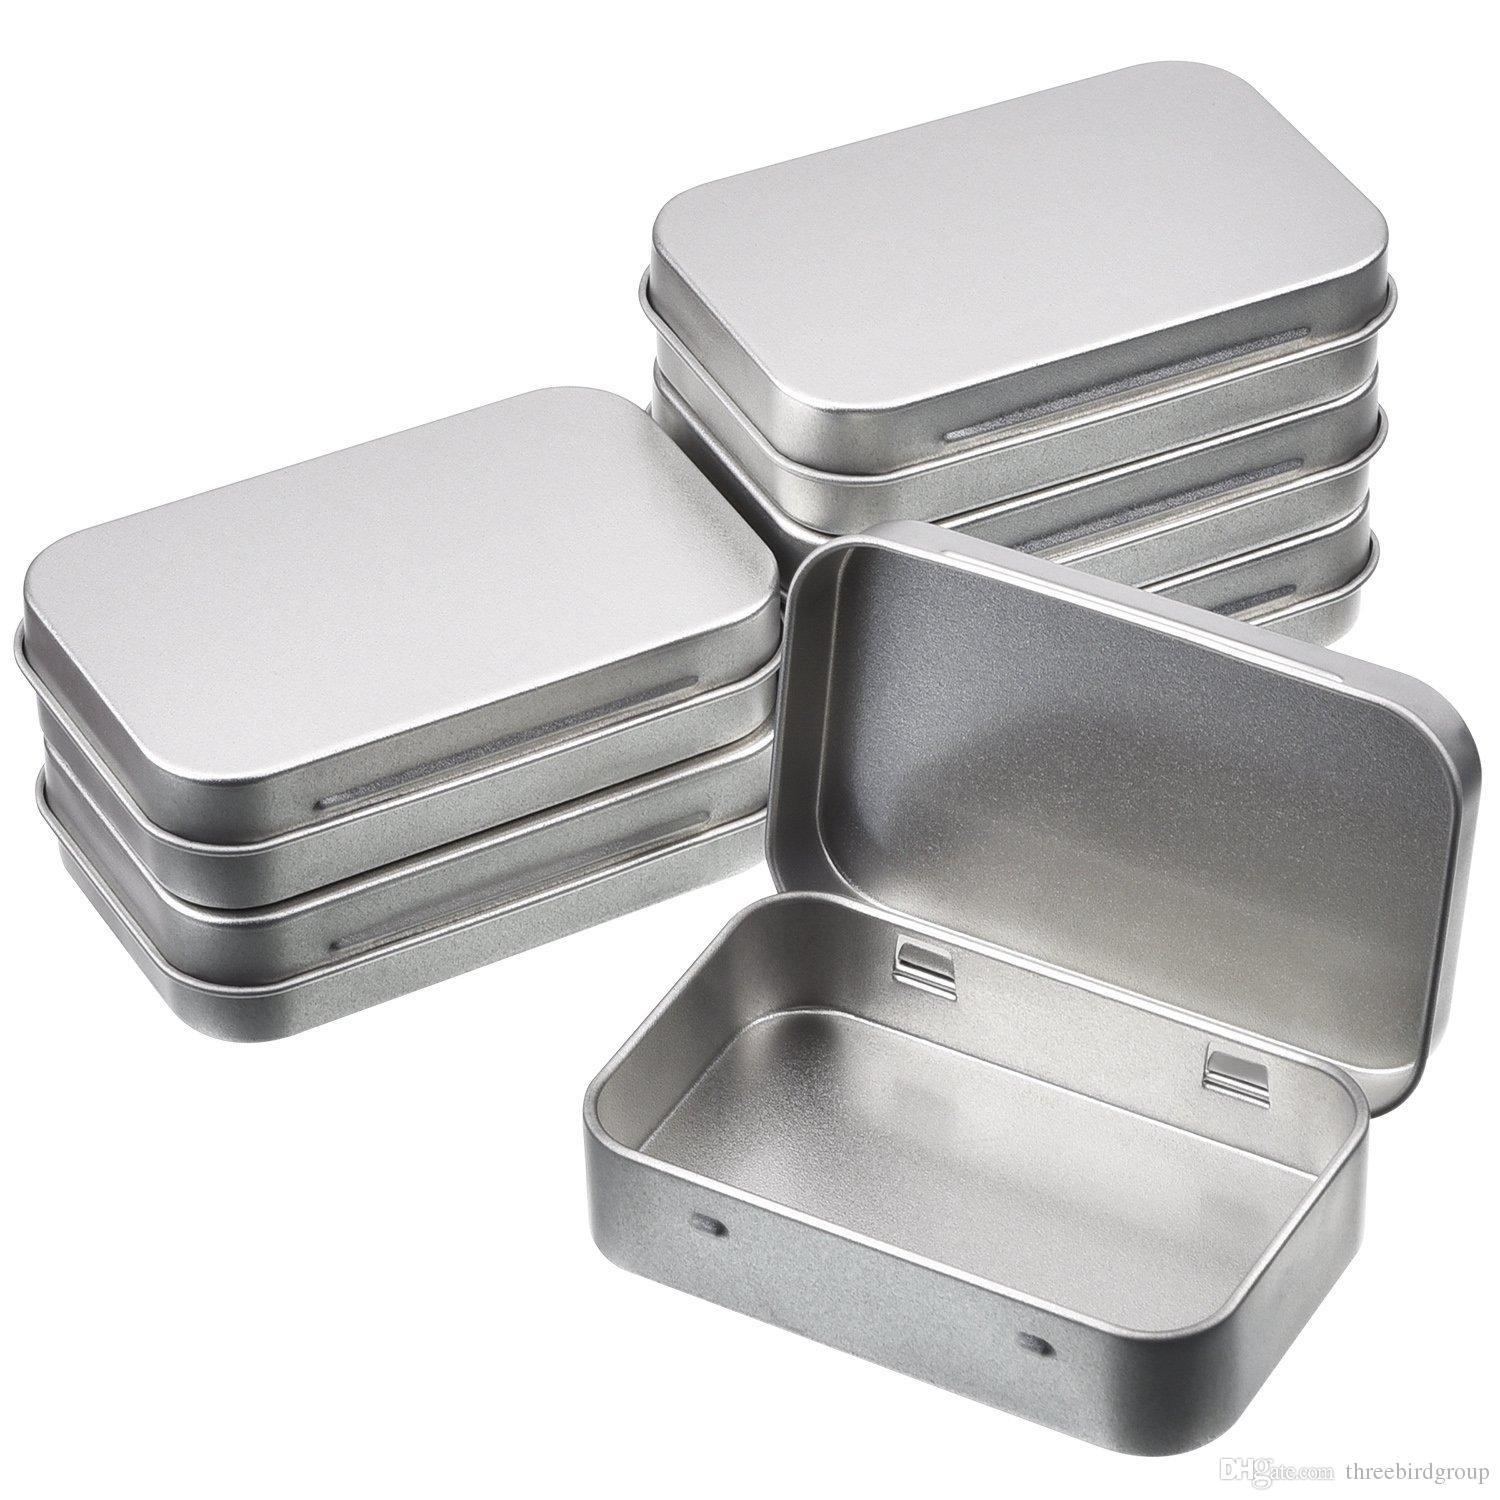 Silver Rectangular Tin | The Container Store |Tin Storage Containers